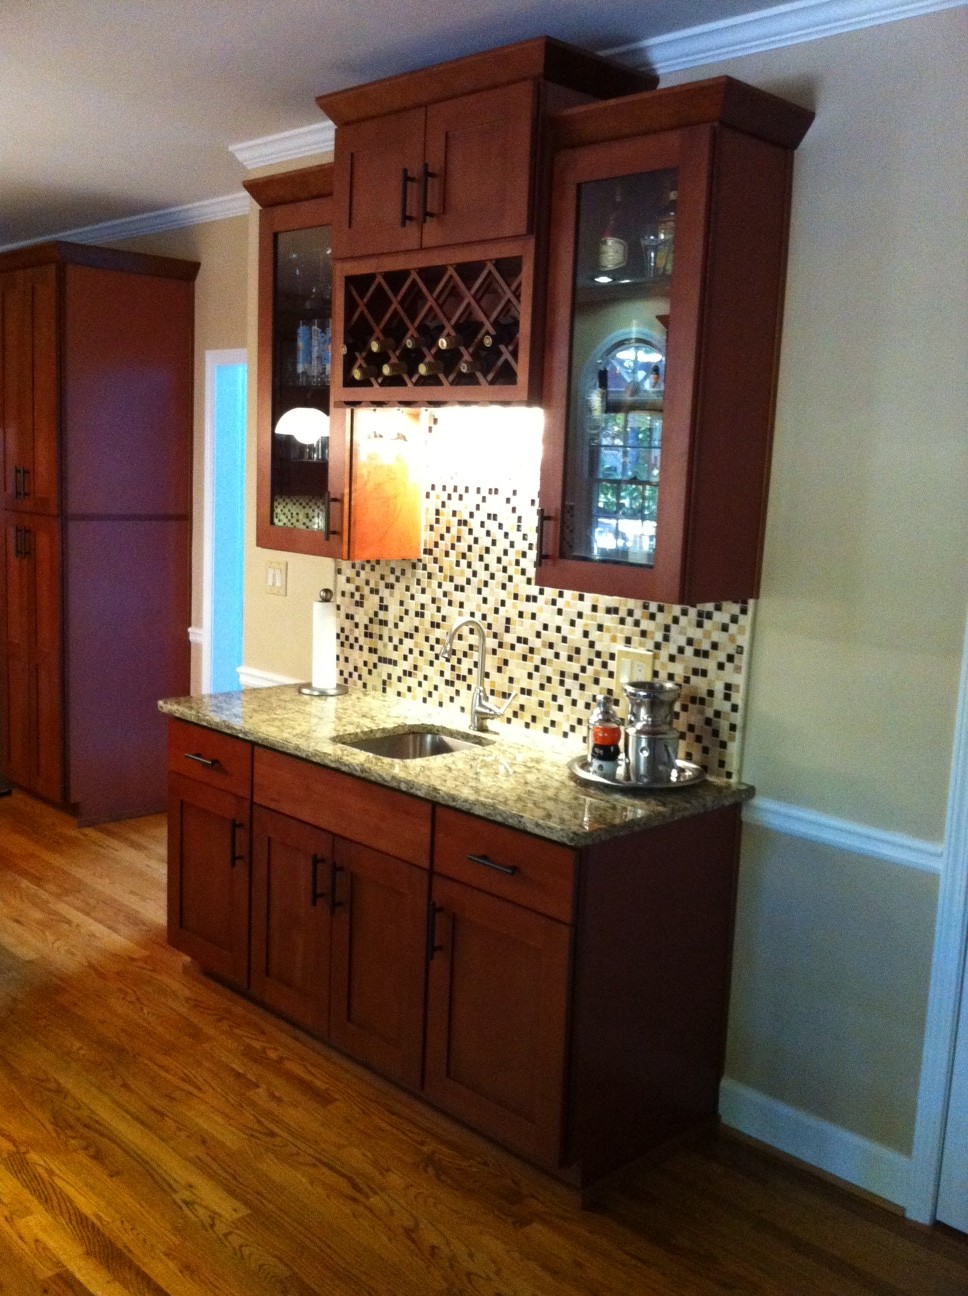 Frugal Kitchens Cabinets 361 N Highway 74 Suite 103 Peachtree